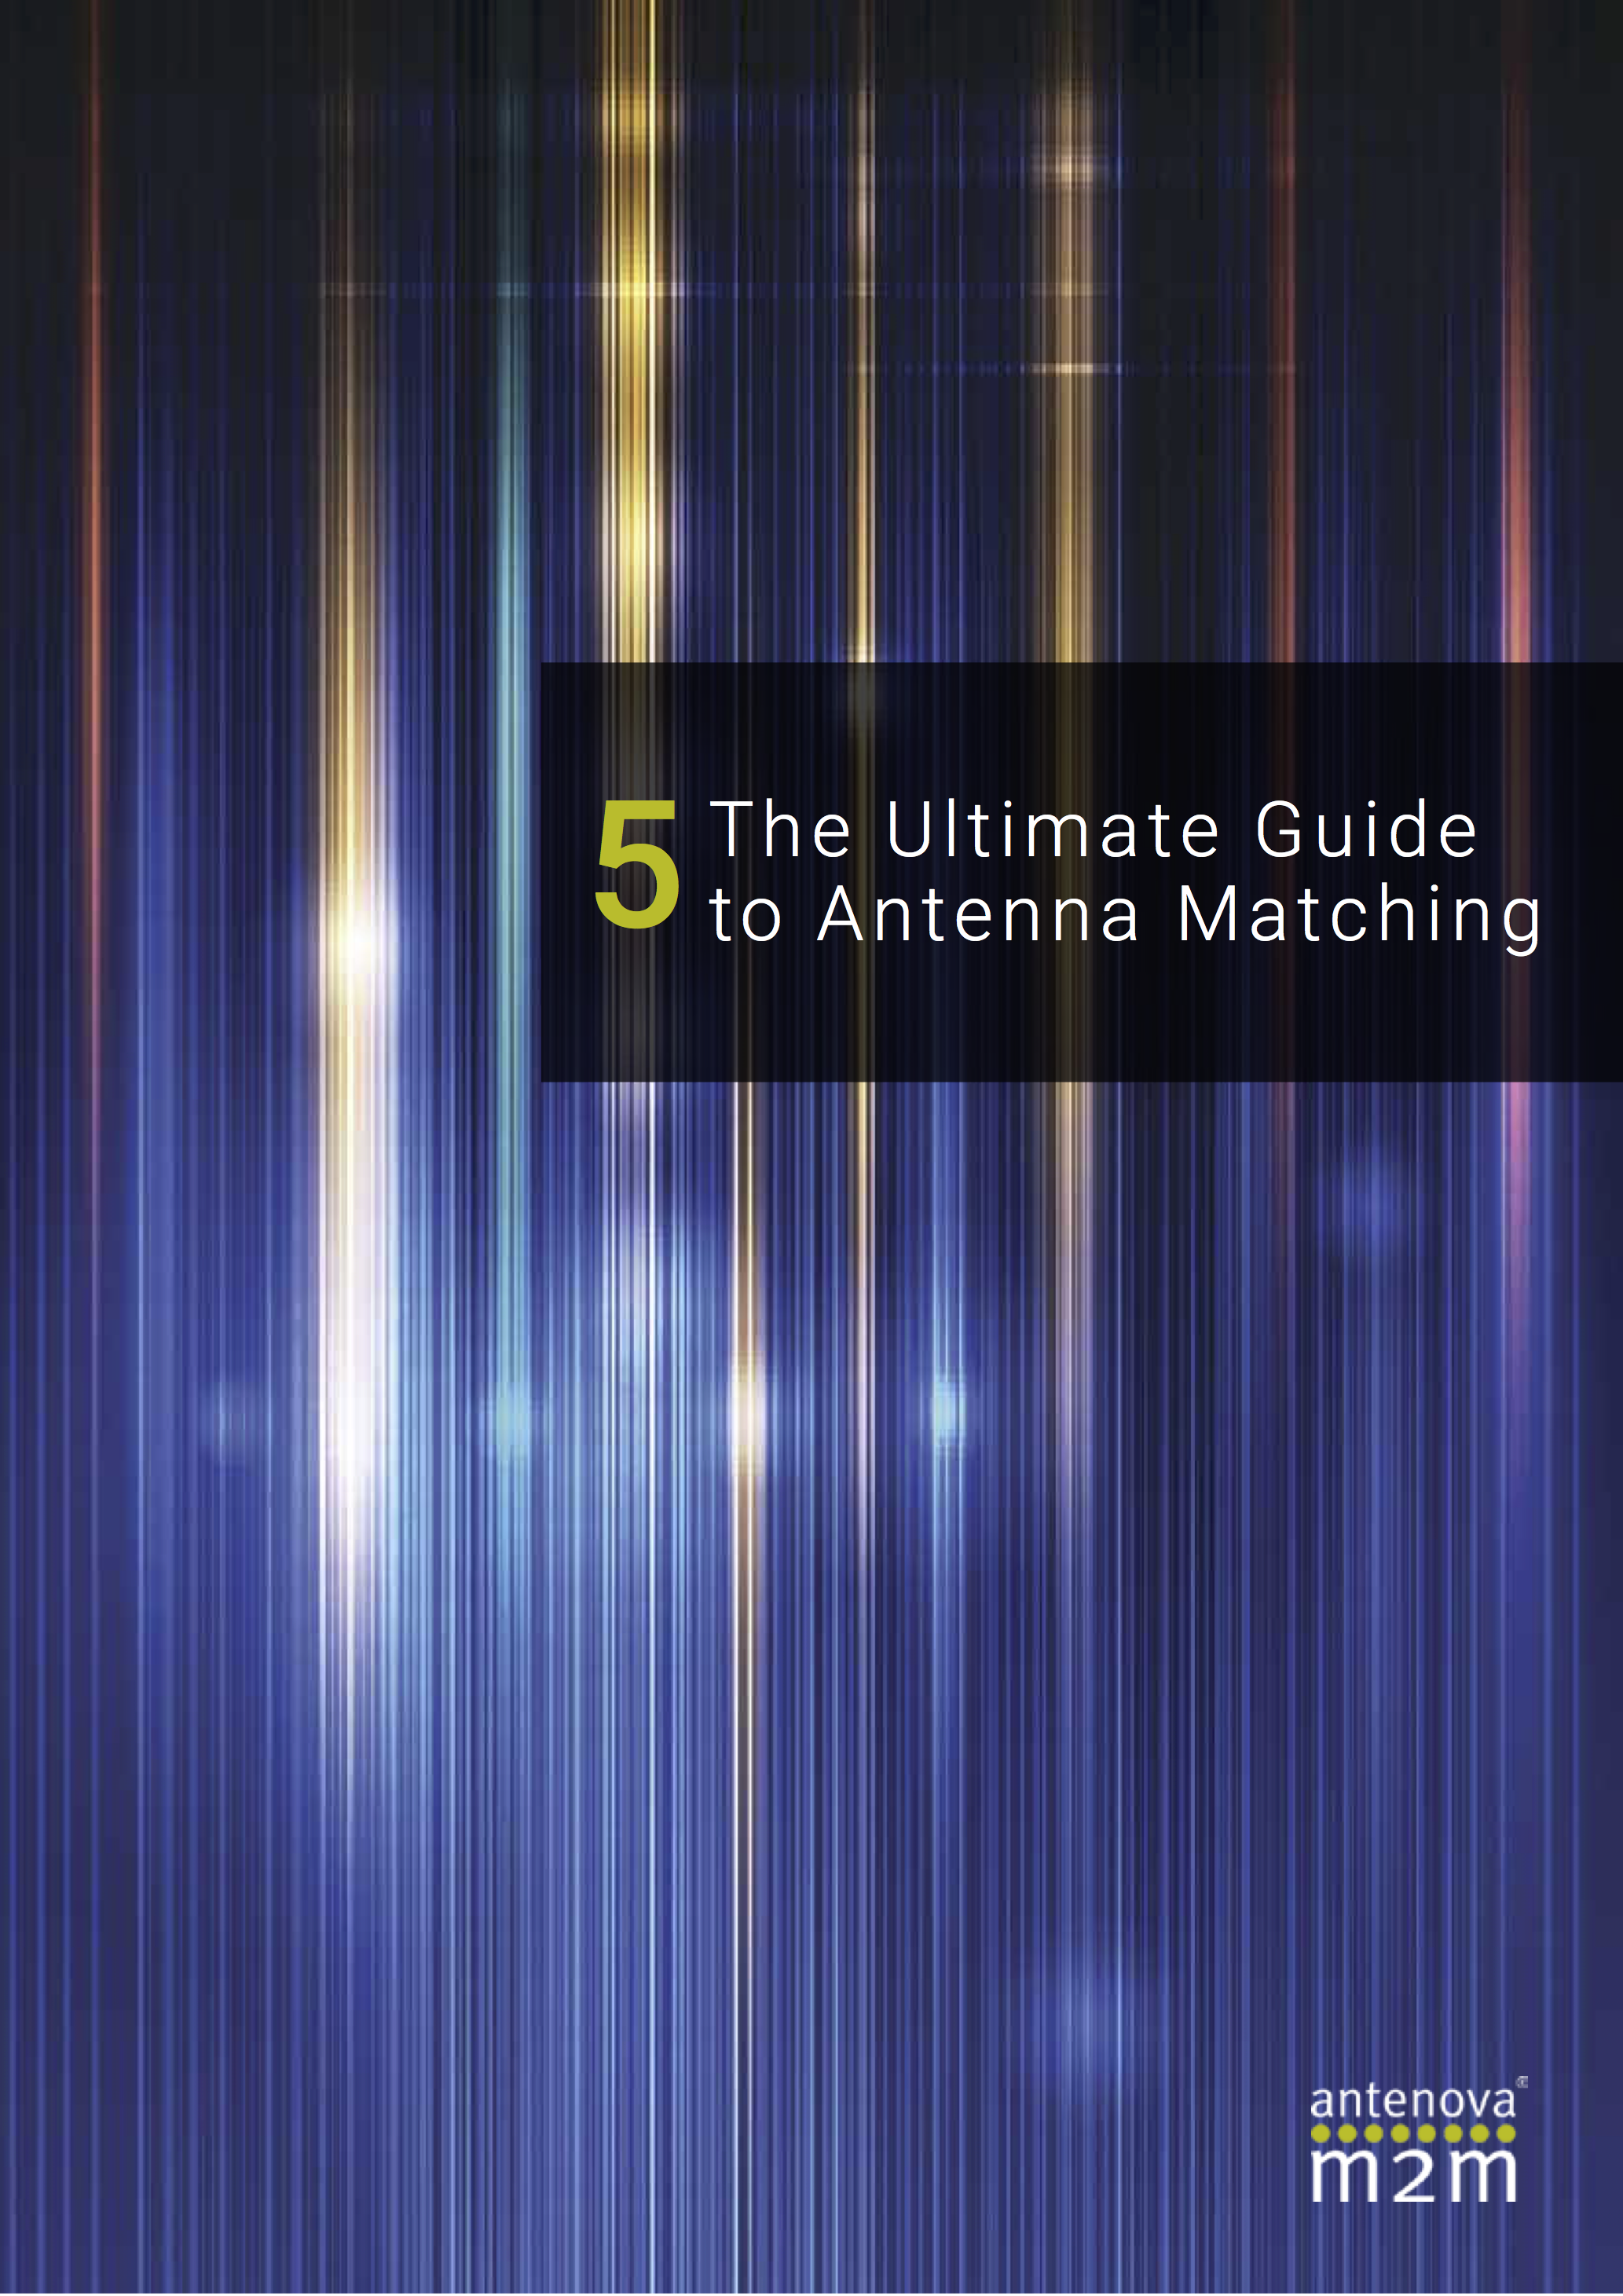 Ultimate-Guide-to-Matching-Antenna-cover.png